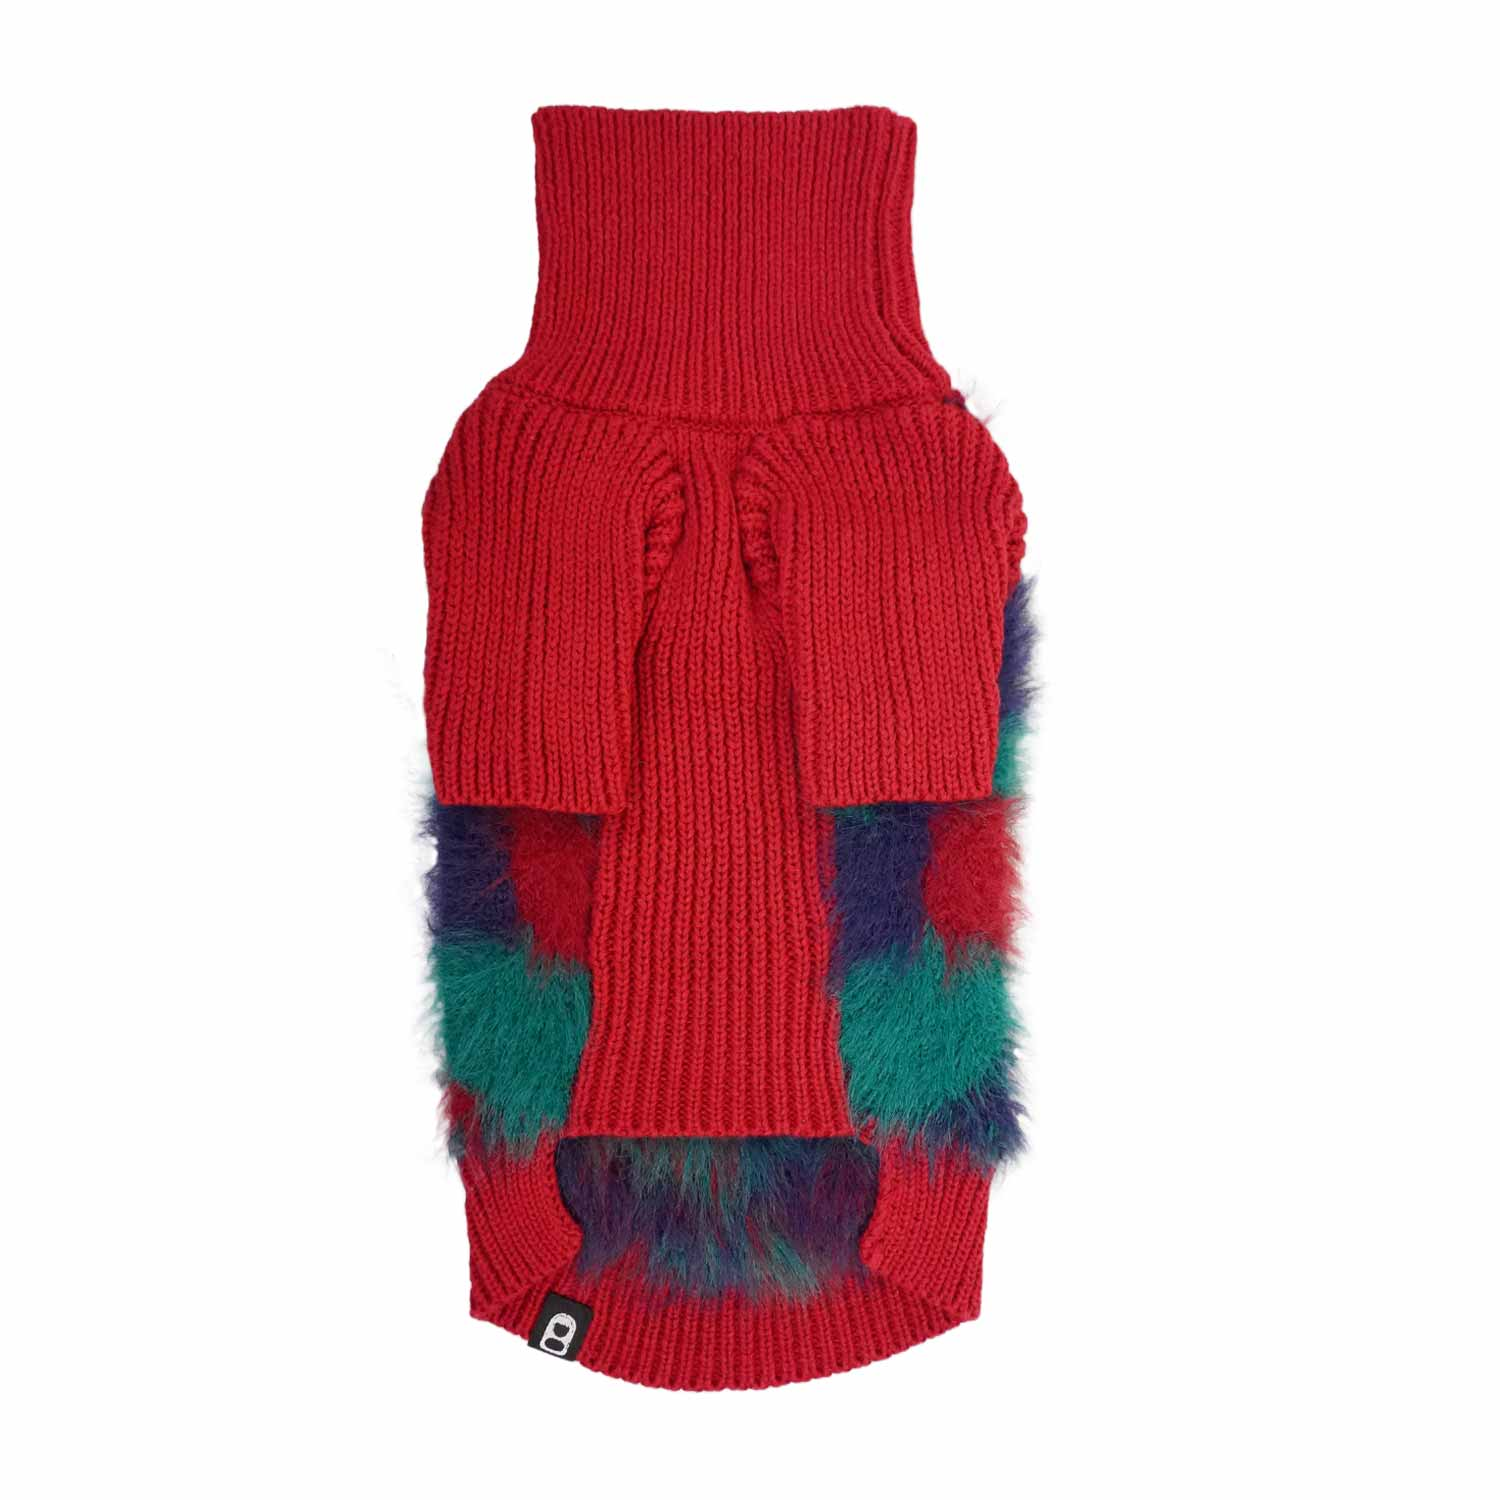 MONSTER SWEATER - RED